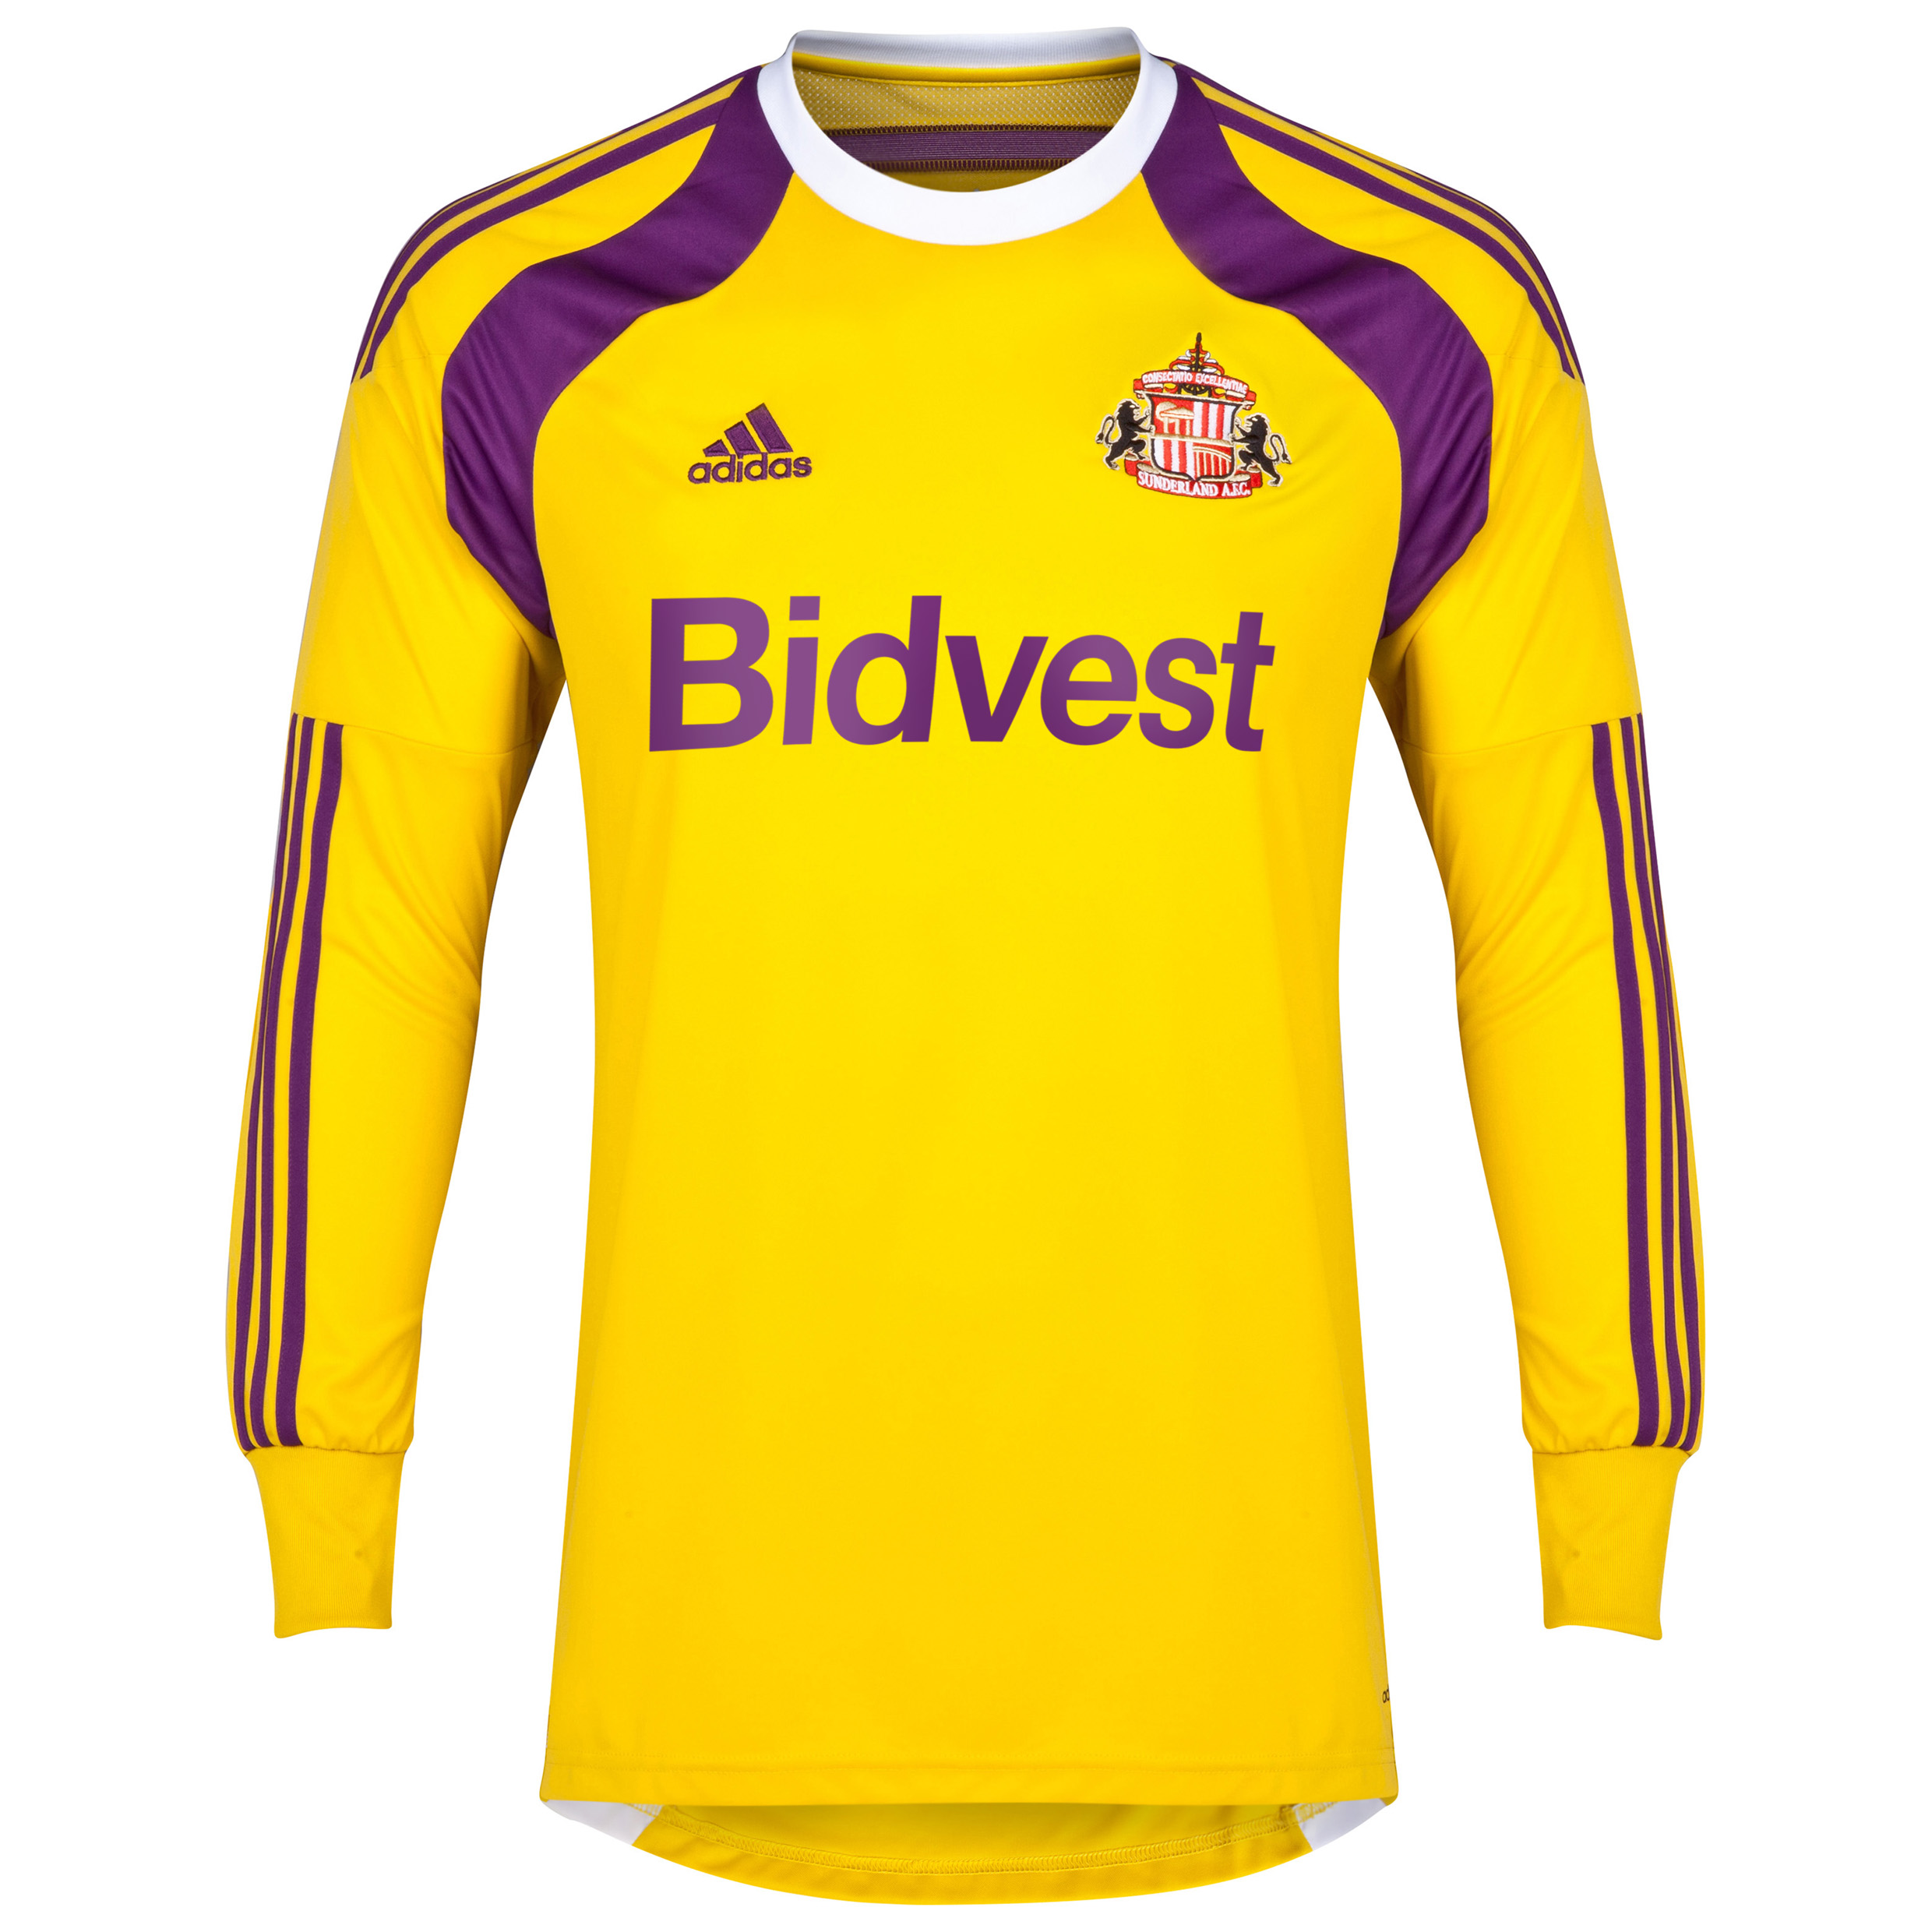 Sunderland Home GK Shirt 2014/15 Yellow